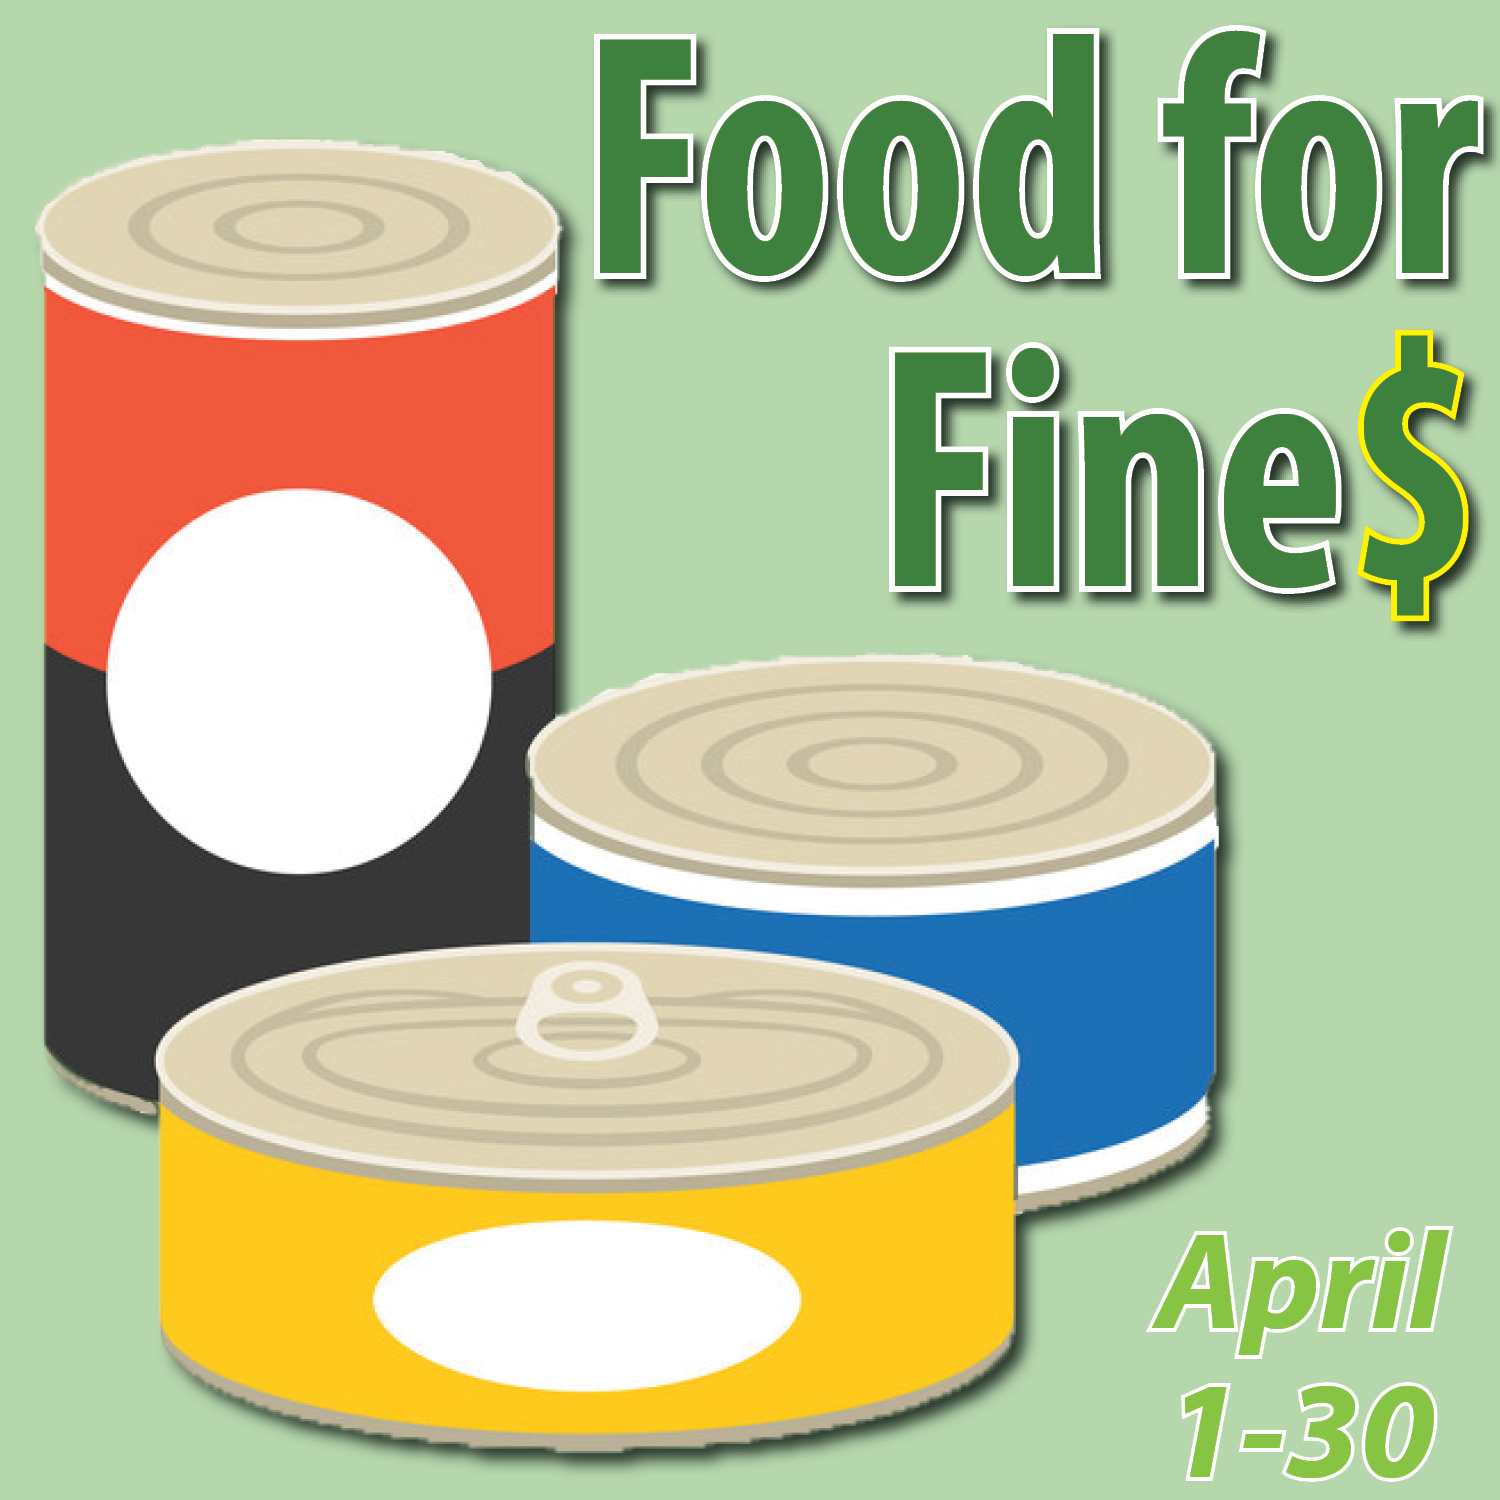 Food for Fines returns to FDLPL in April